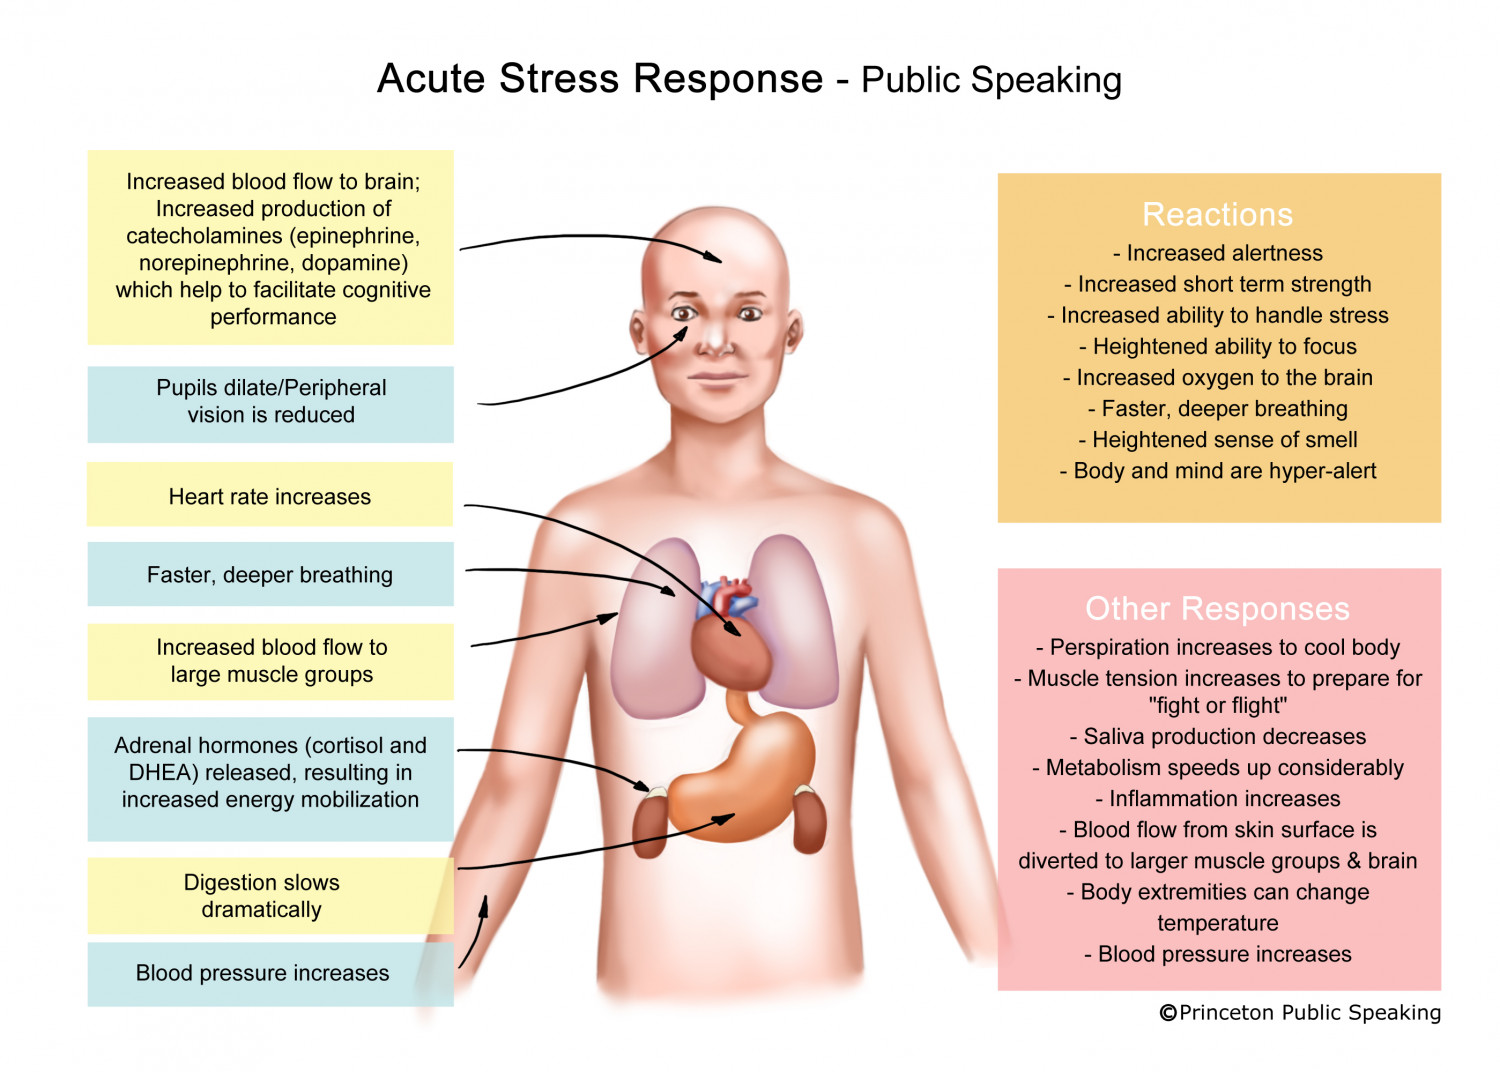 Acute Stress Response - Public Speaking Infographic